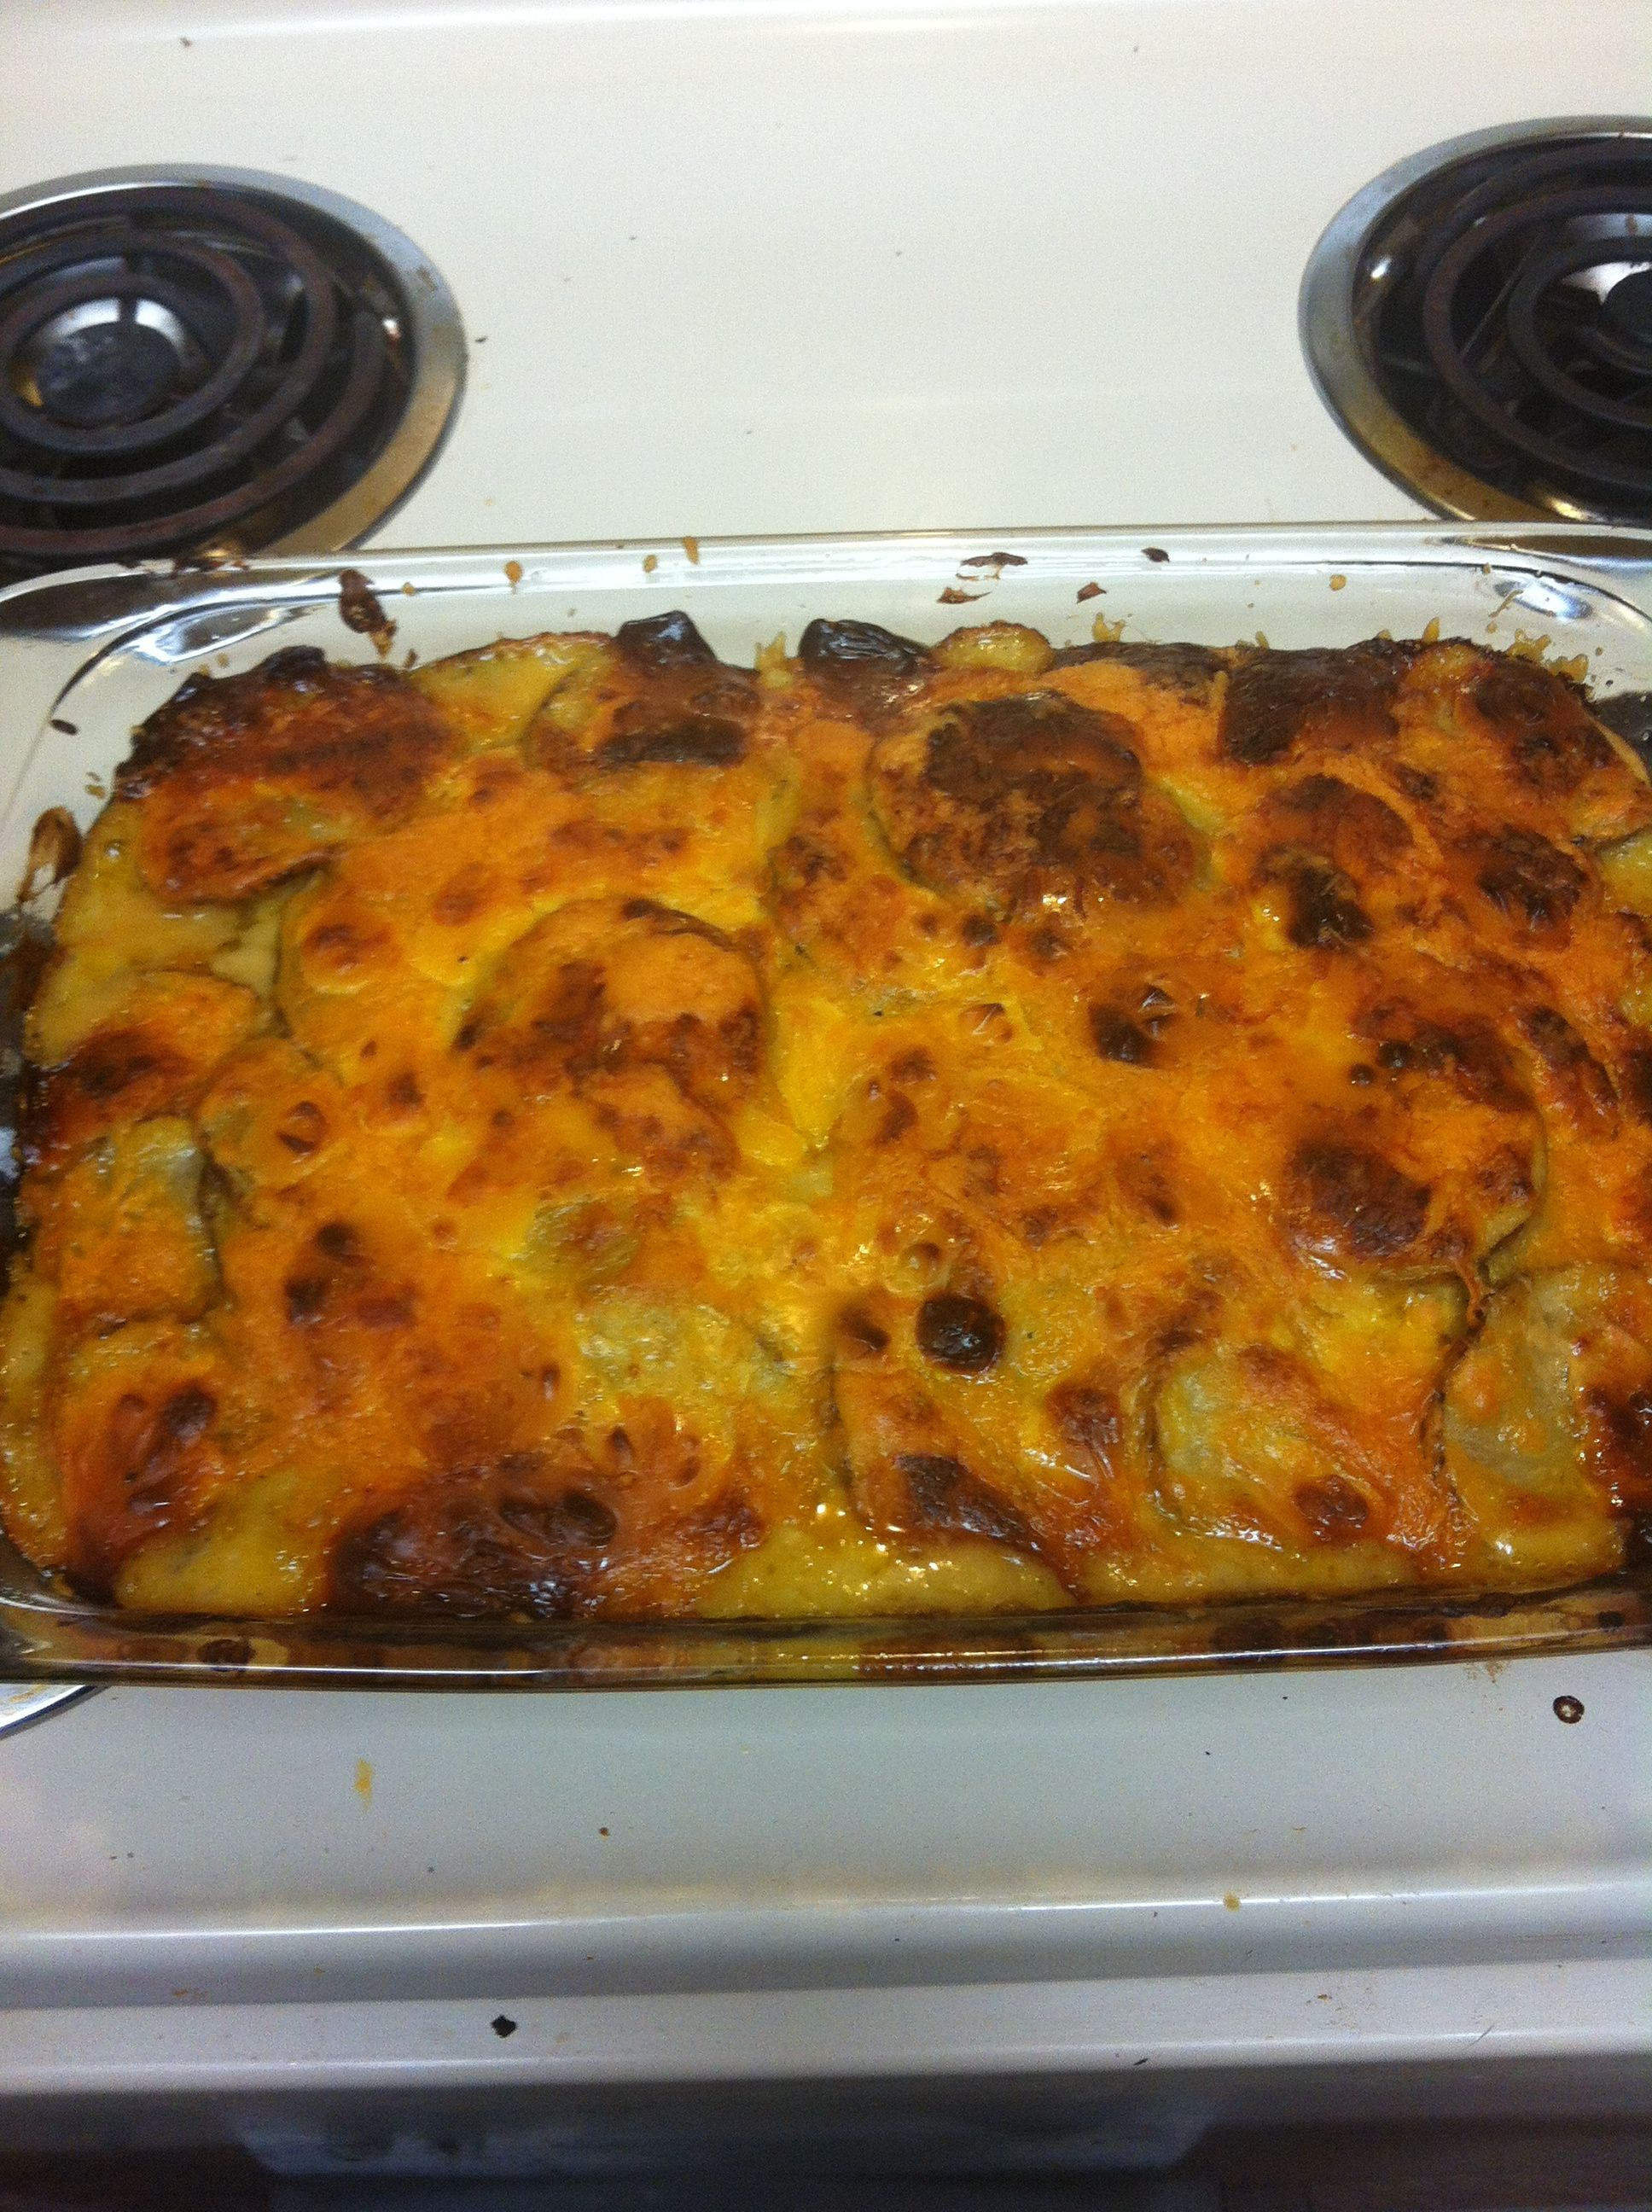 Homemade Augratin potatoes. Very easy. Potatoes, sliced thin. Cheddar cheese, packet of hollandaise sauce, can of cream of broccoli soup, layered and baked. Really yummy!!